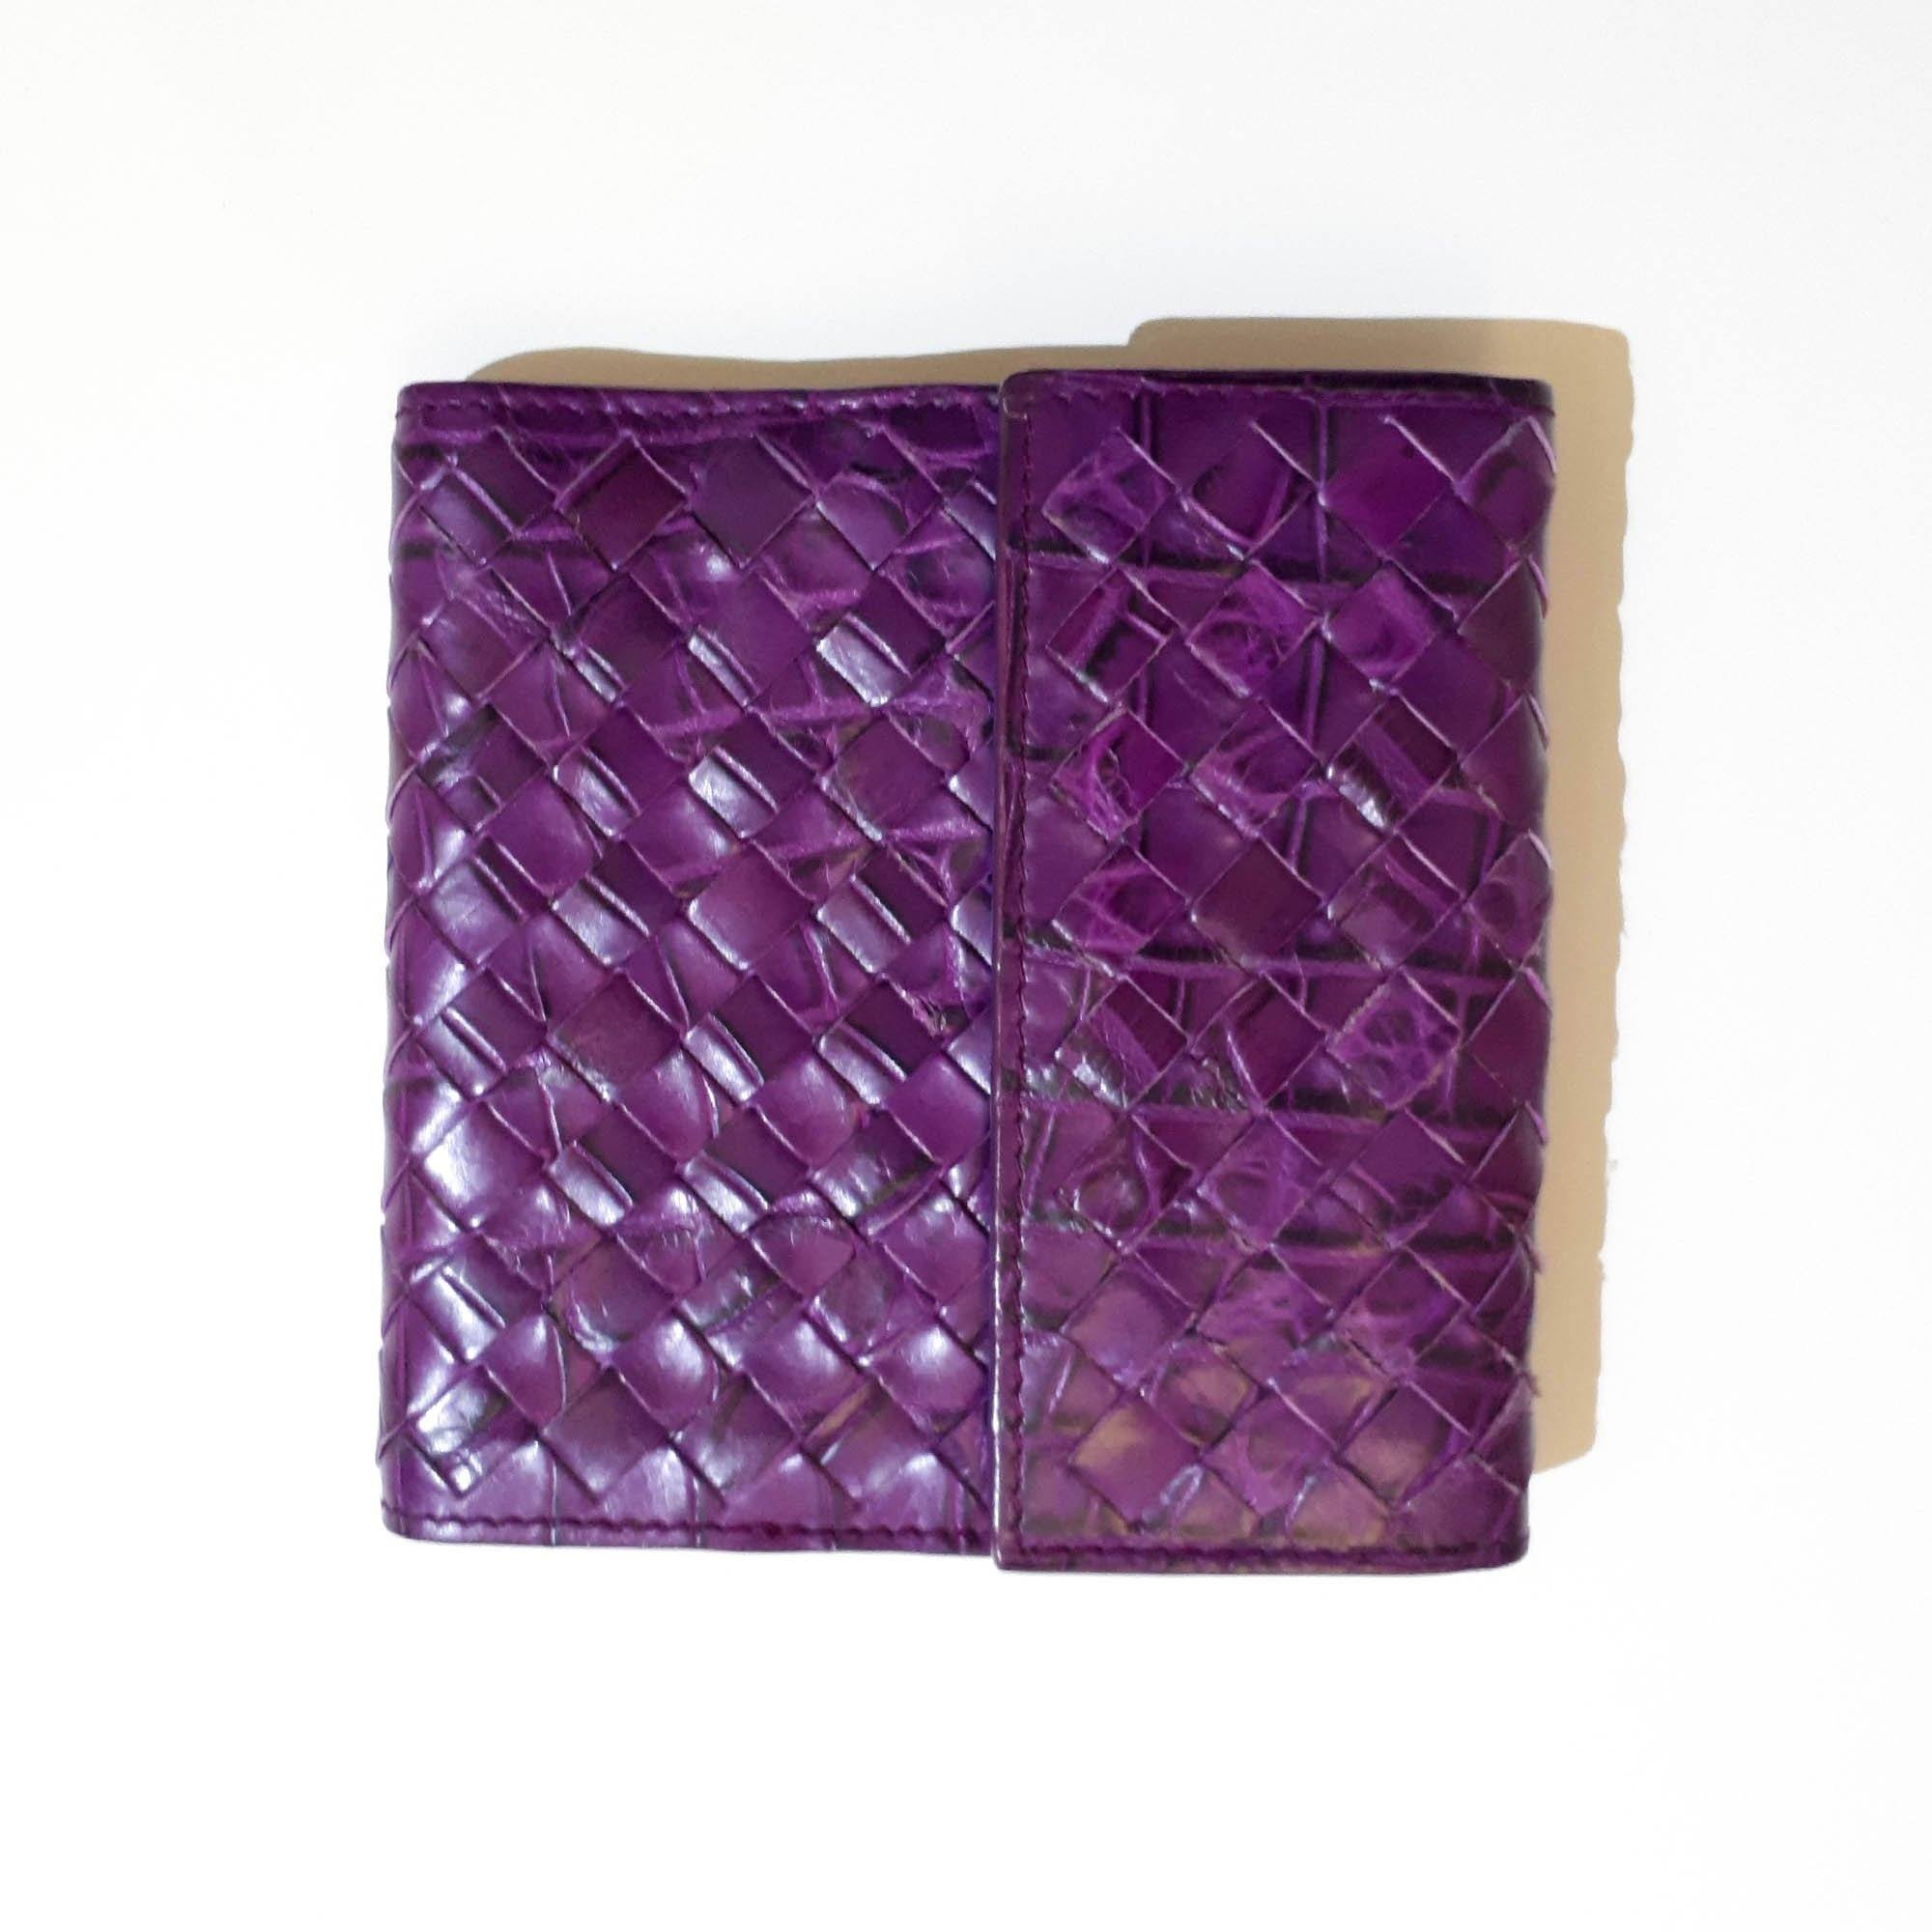 Bottega Veneta Intrecciato Purple Leather Wallet